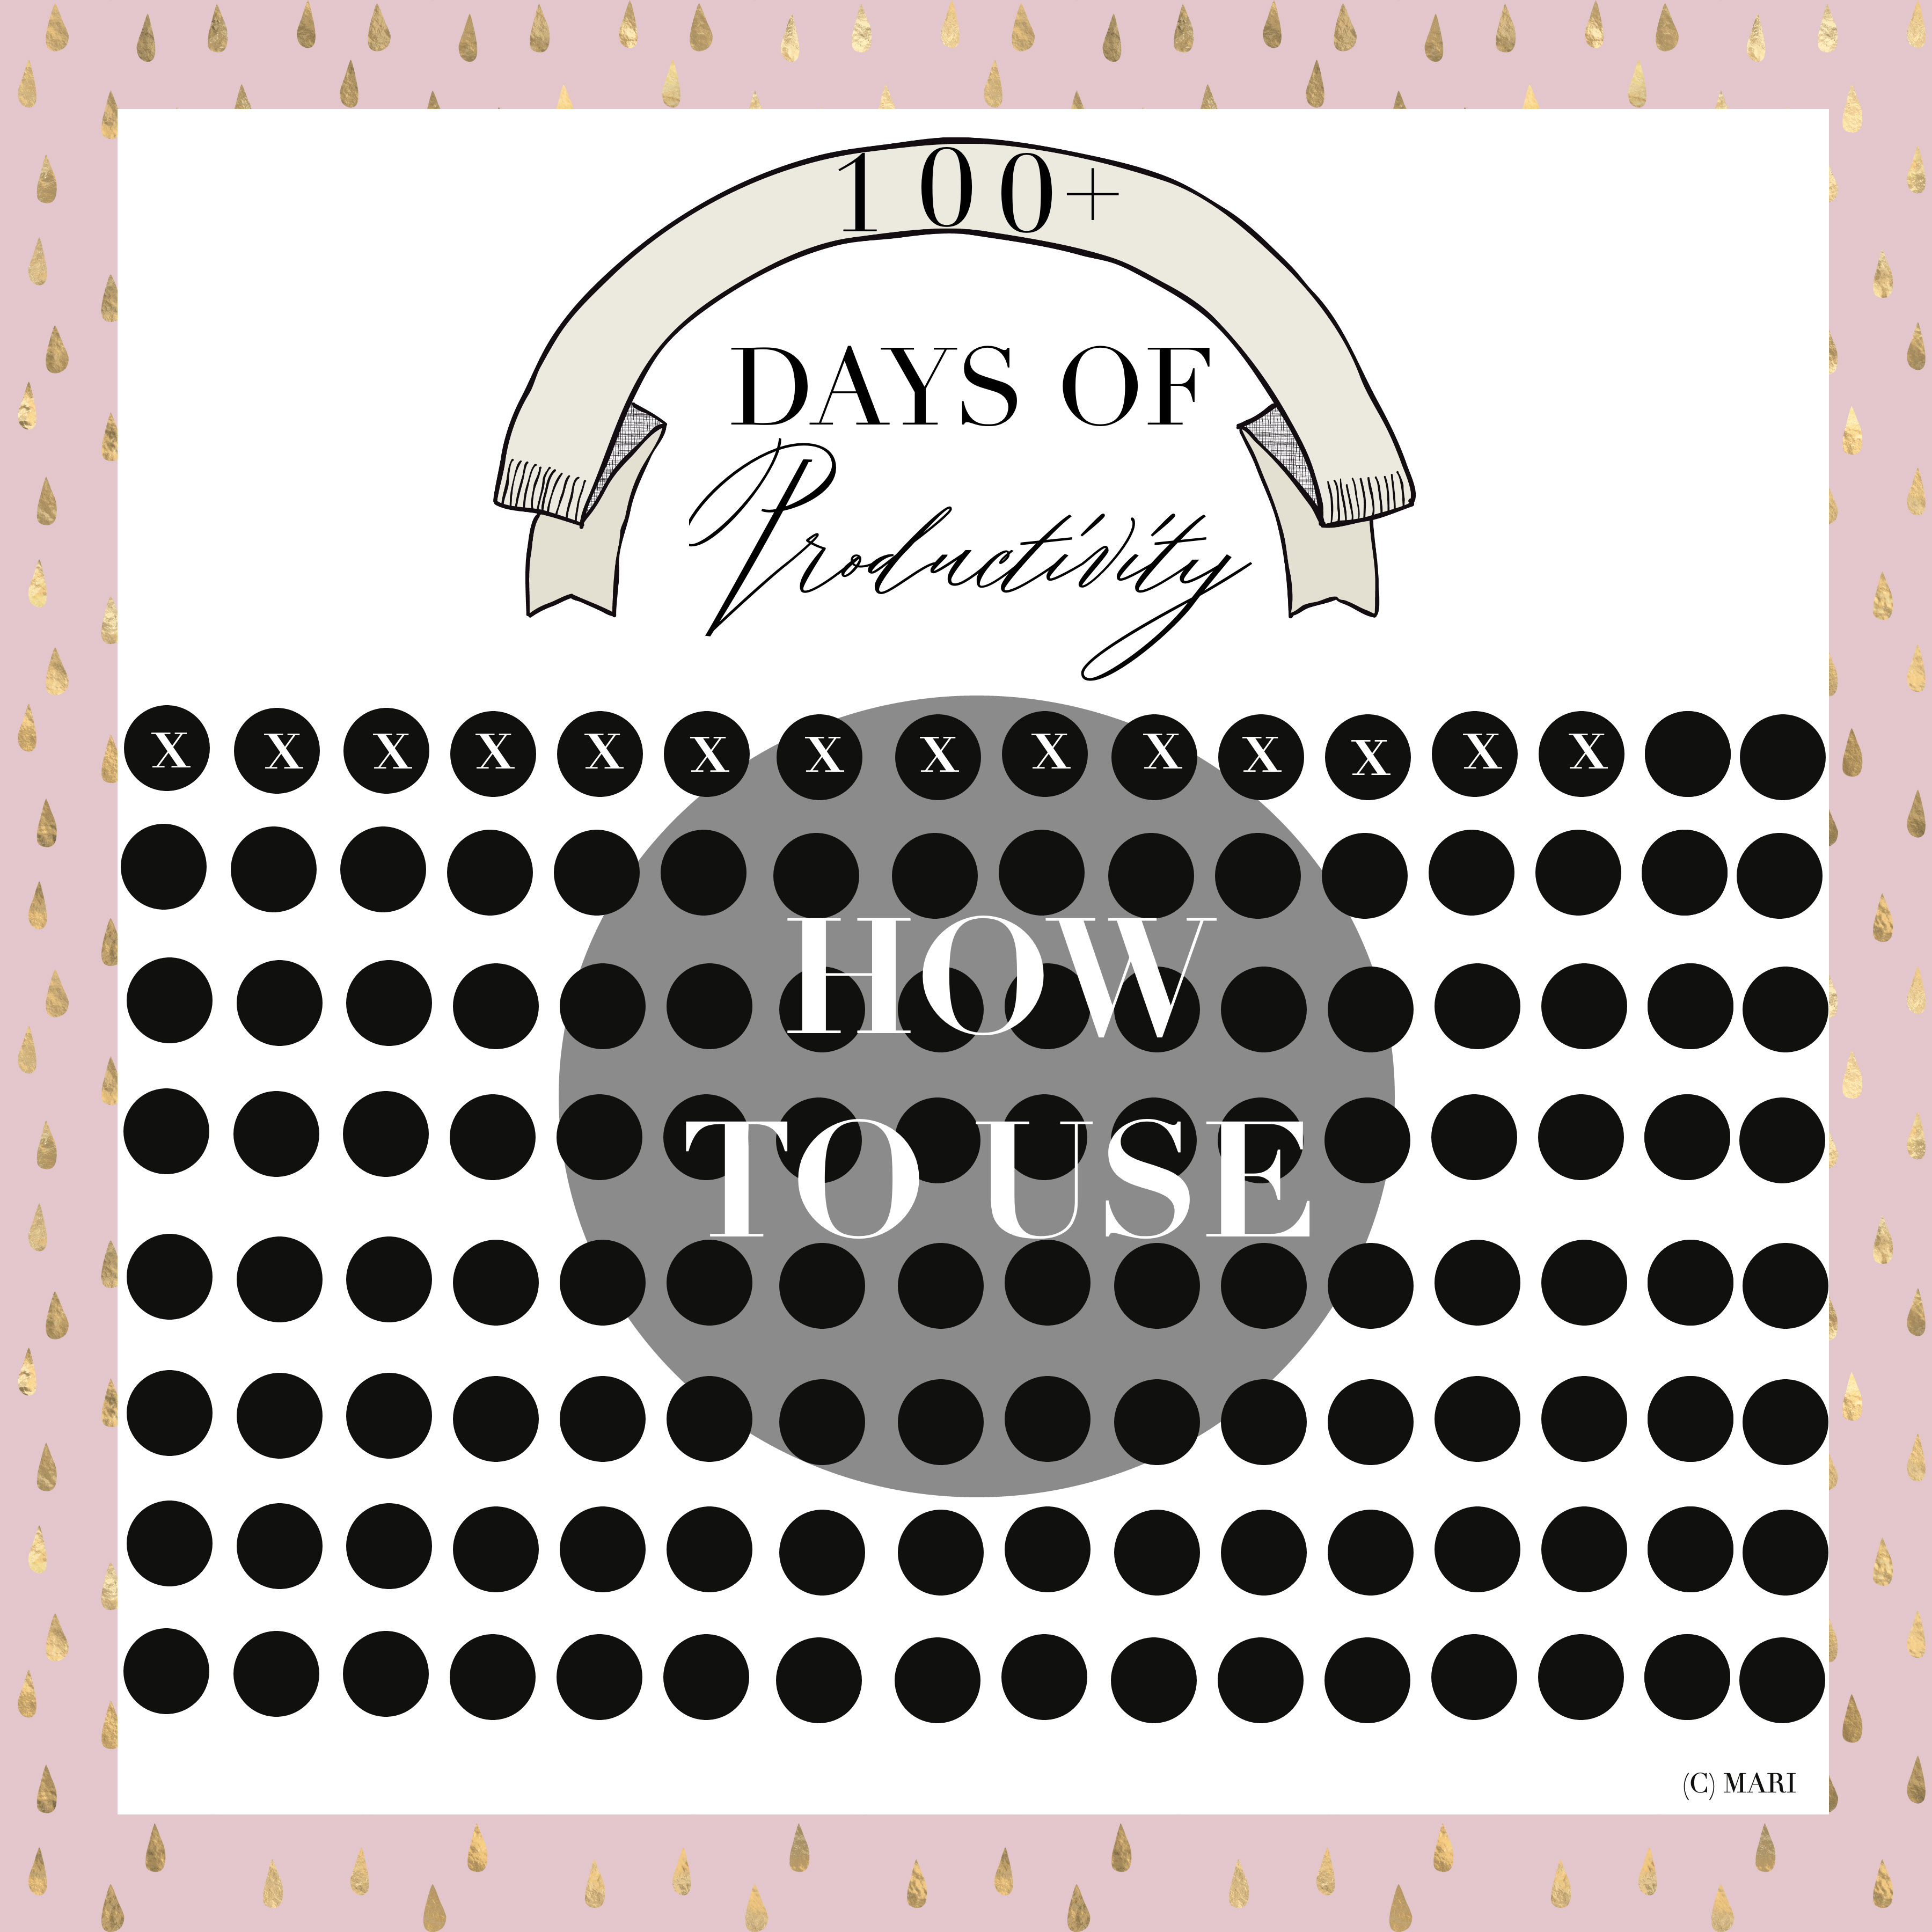 100+ Days of Productivity | Shop @ Gumroad | By Mari